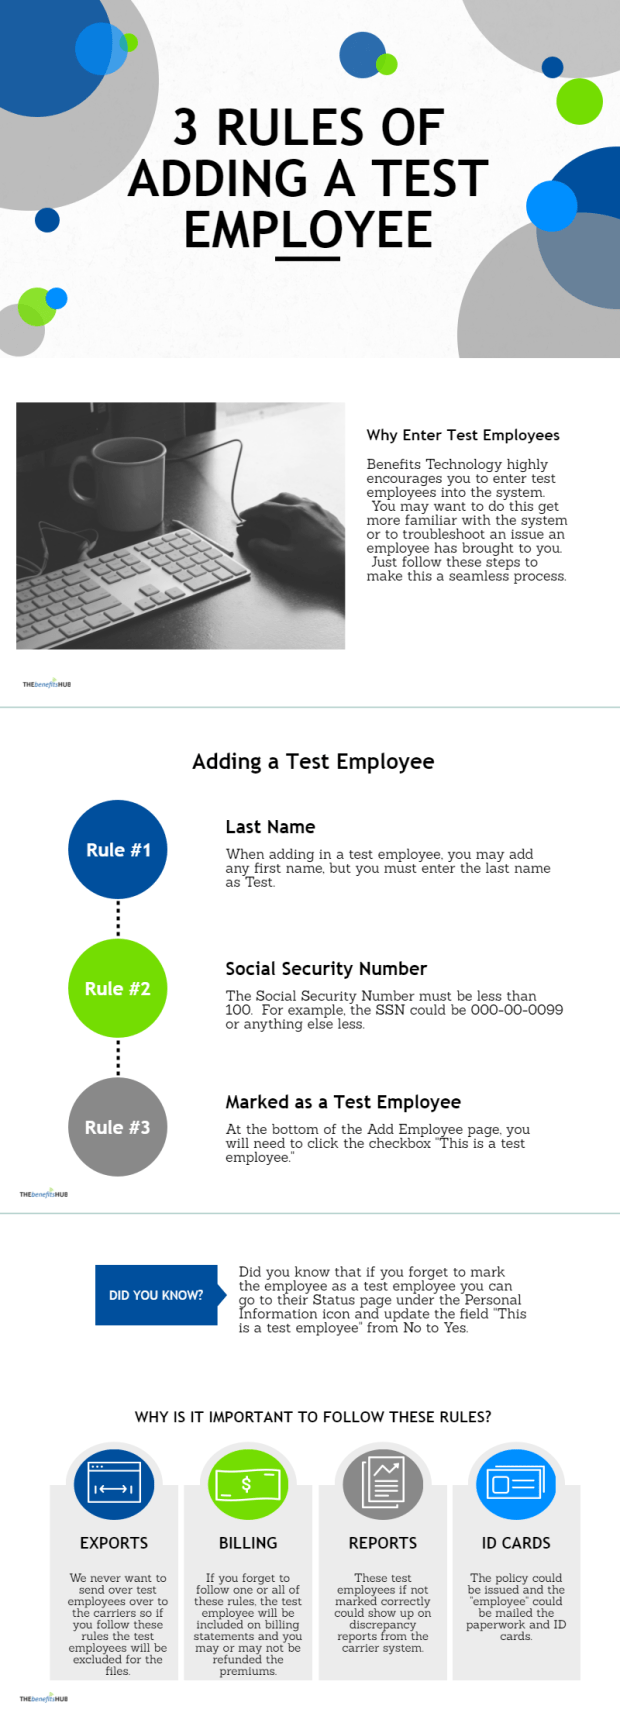 3-rules-of-adding-a-test-employee